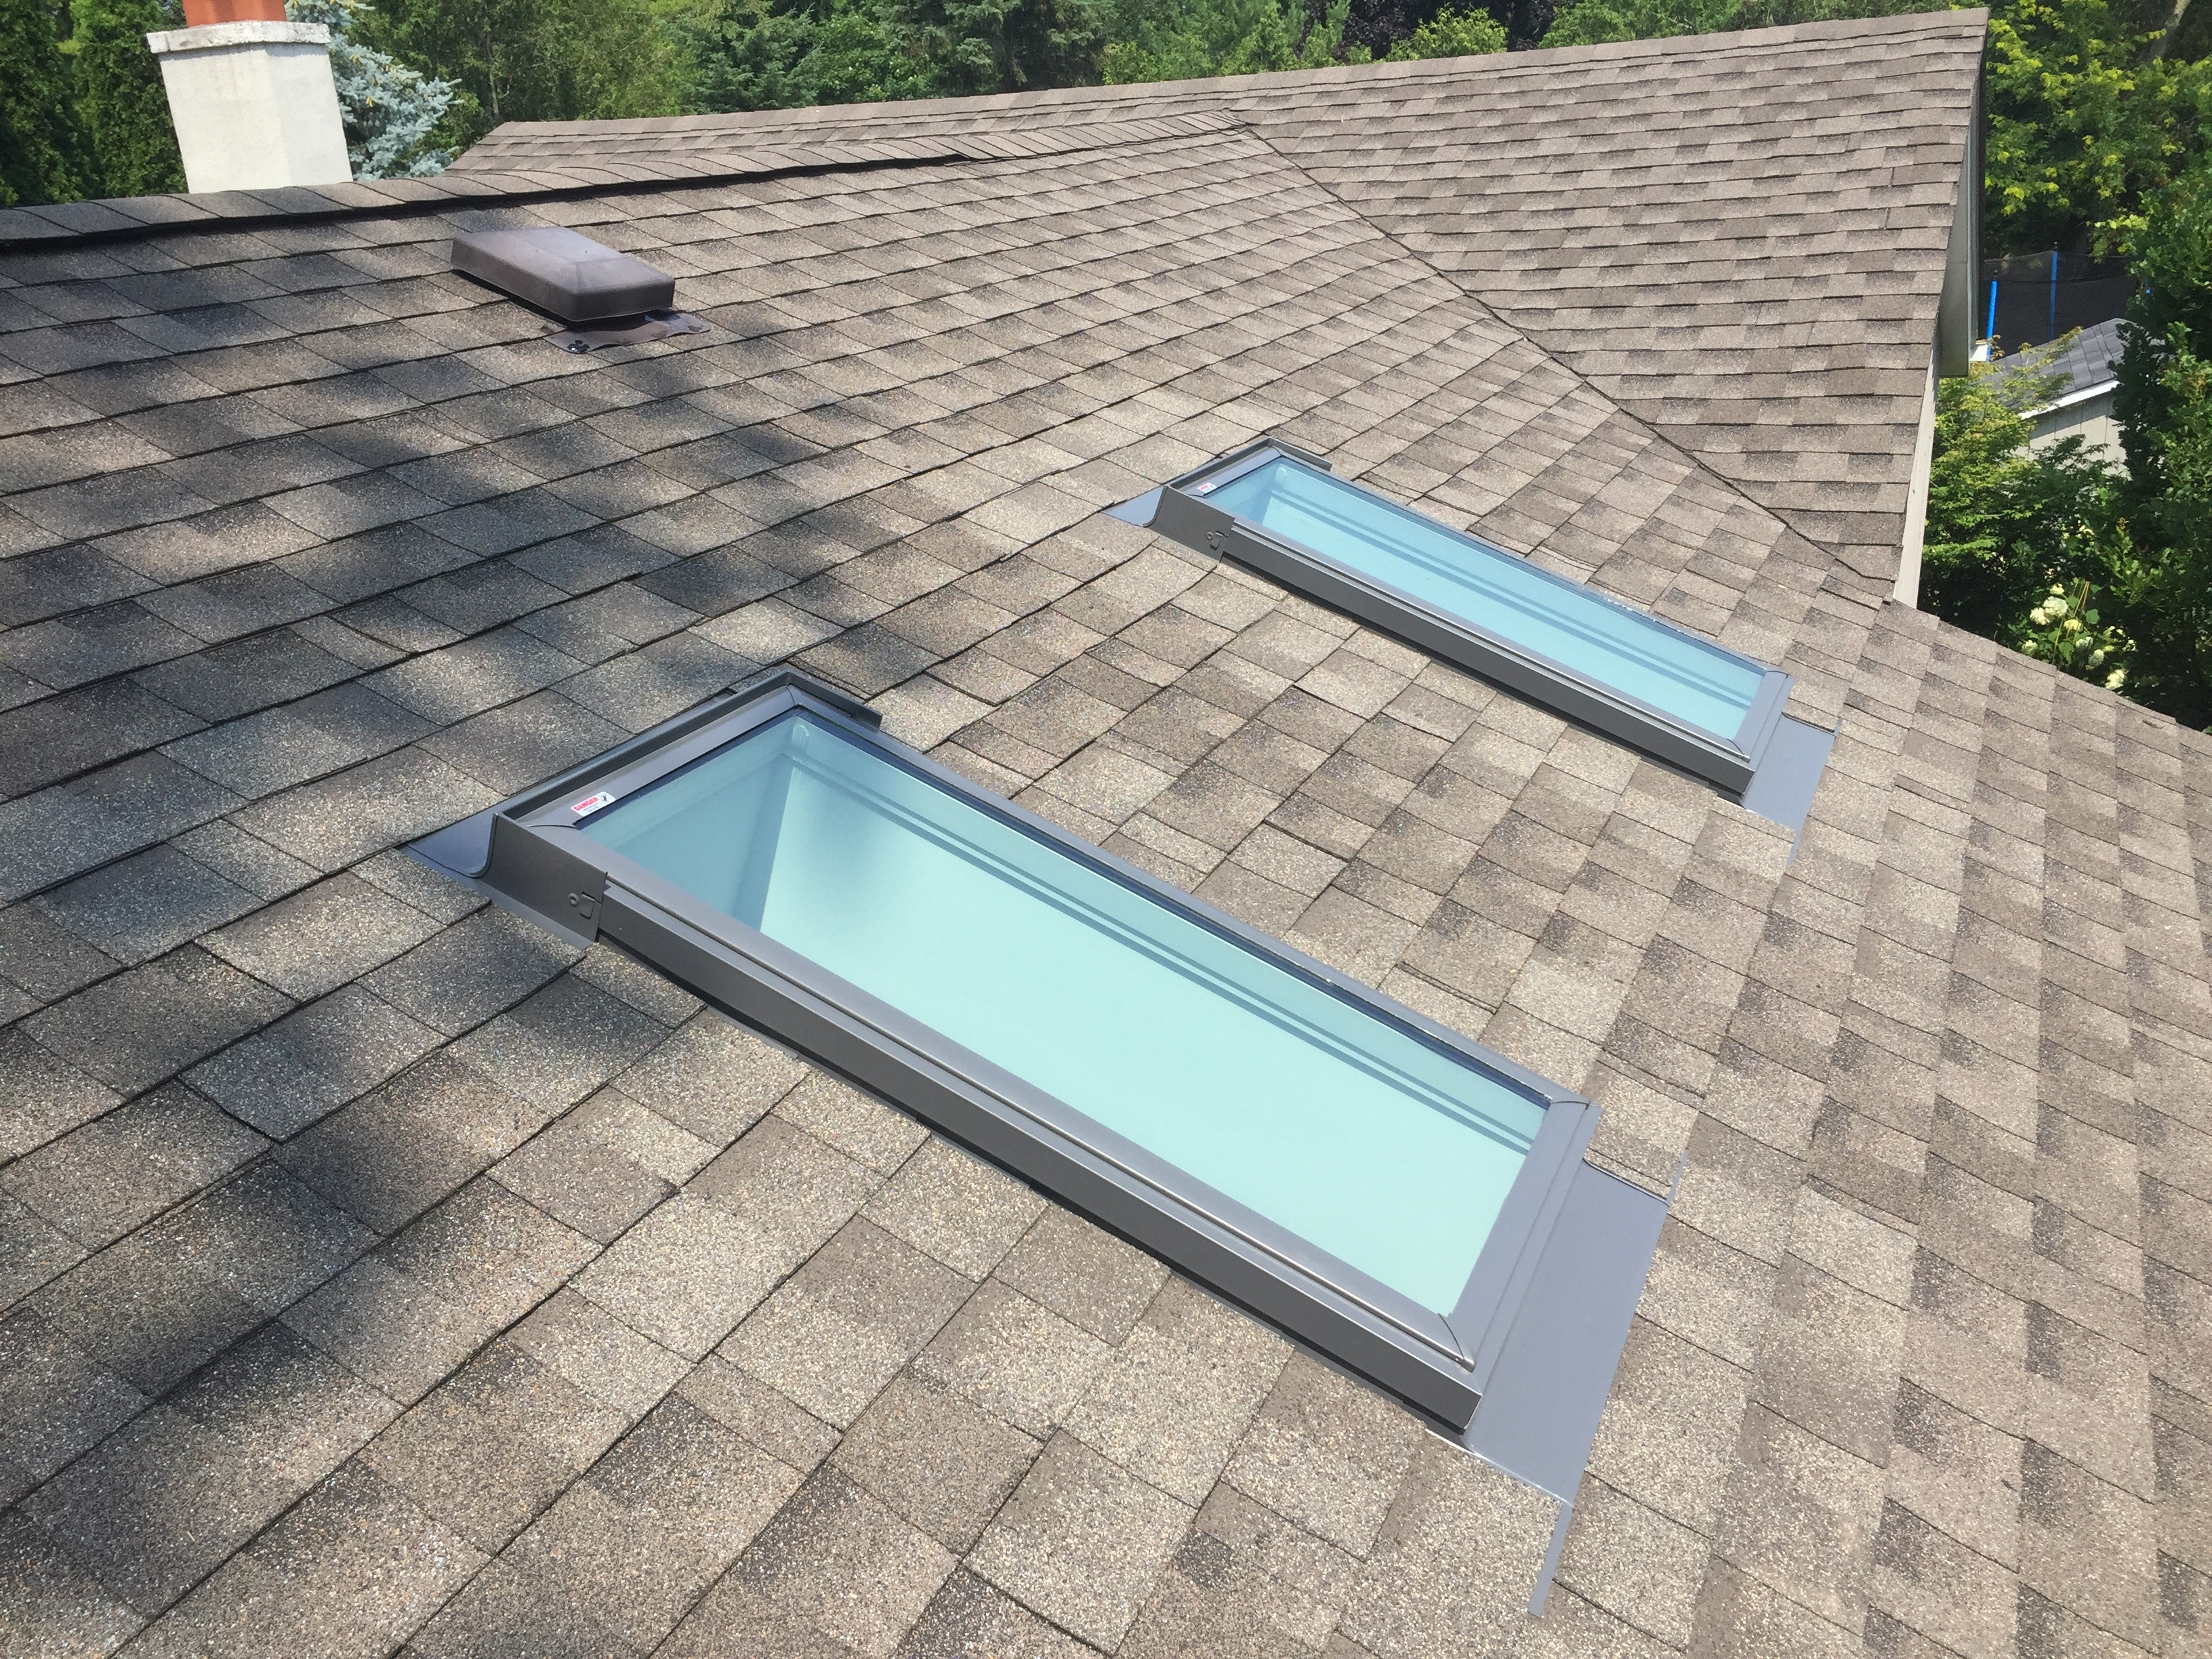 Port Hope Skylight Replacement